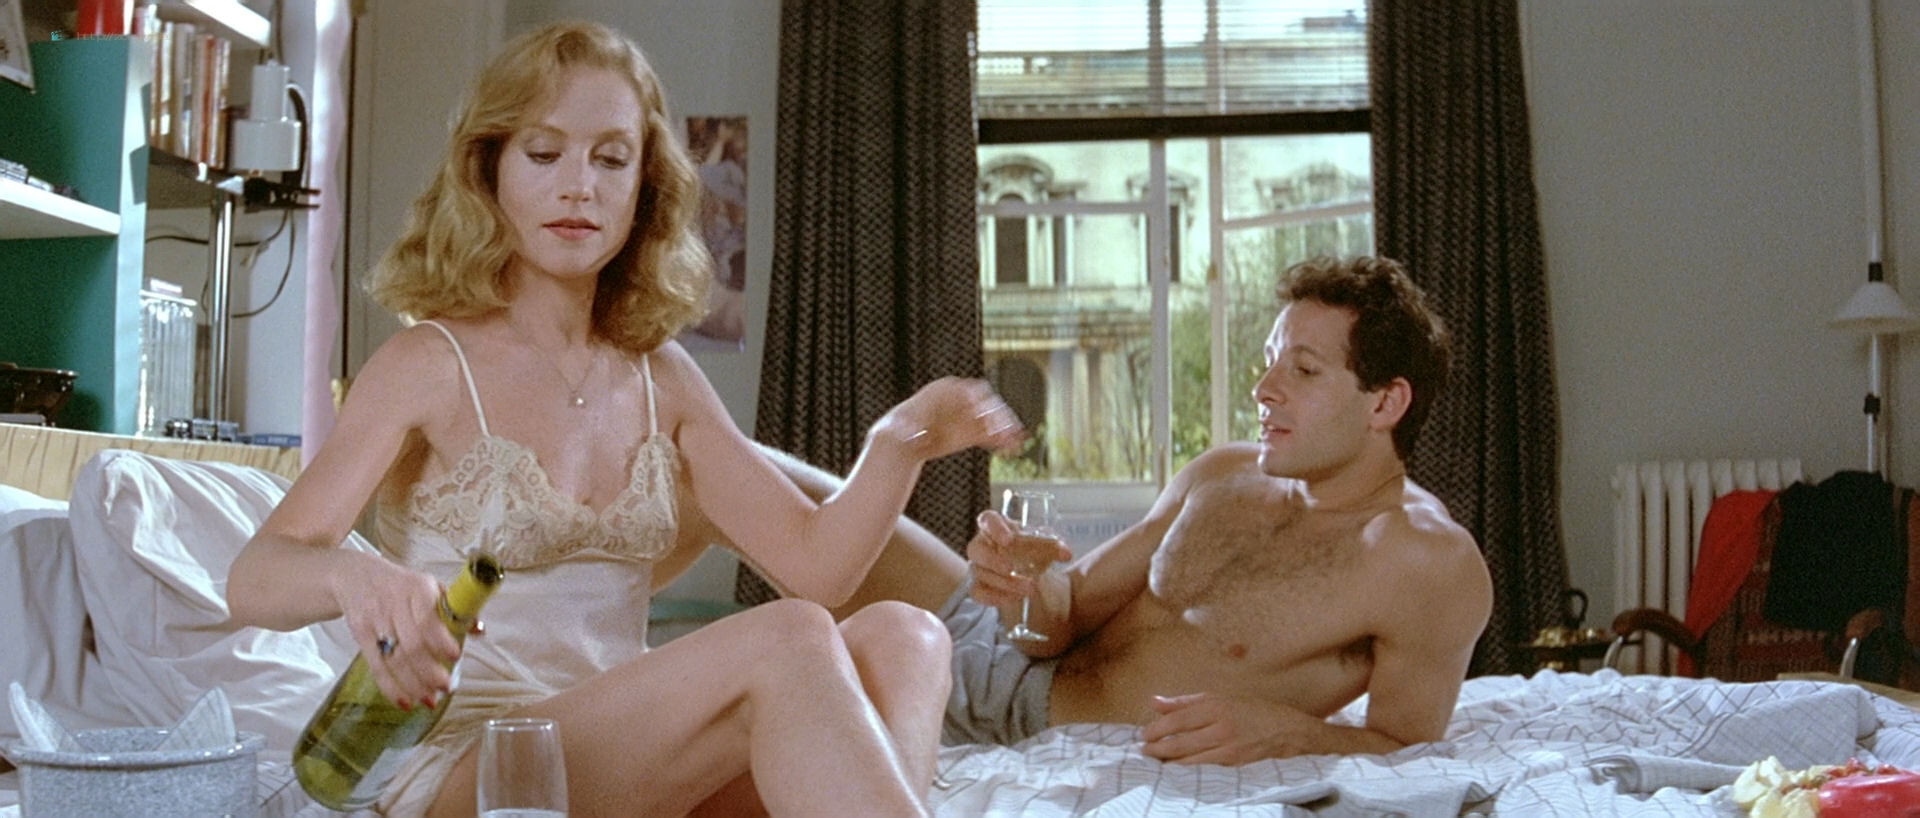 Isabelle Huppert nude topless and butt Elizabeth McGovern nude - The Bedroom Window (1987) HD 1080p BluRay (7)